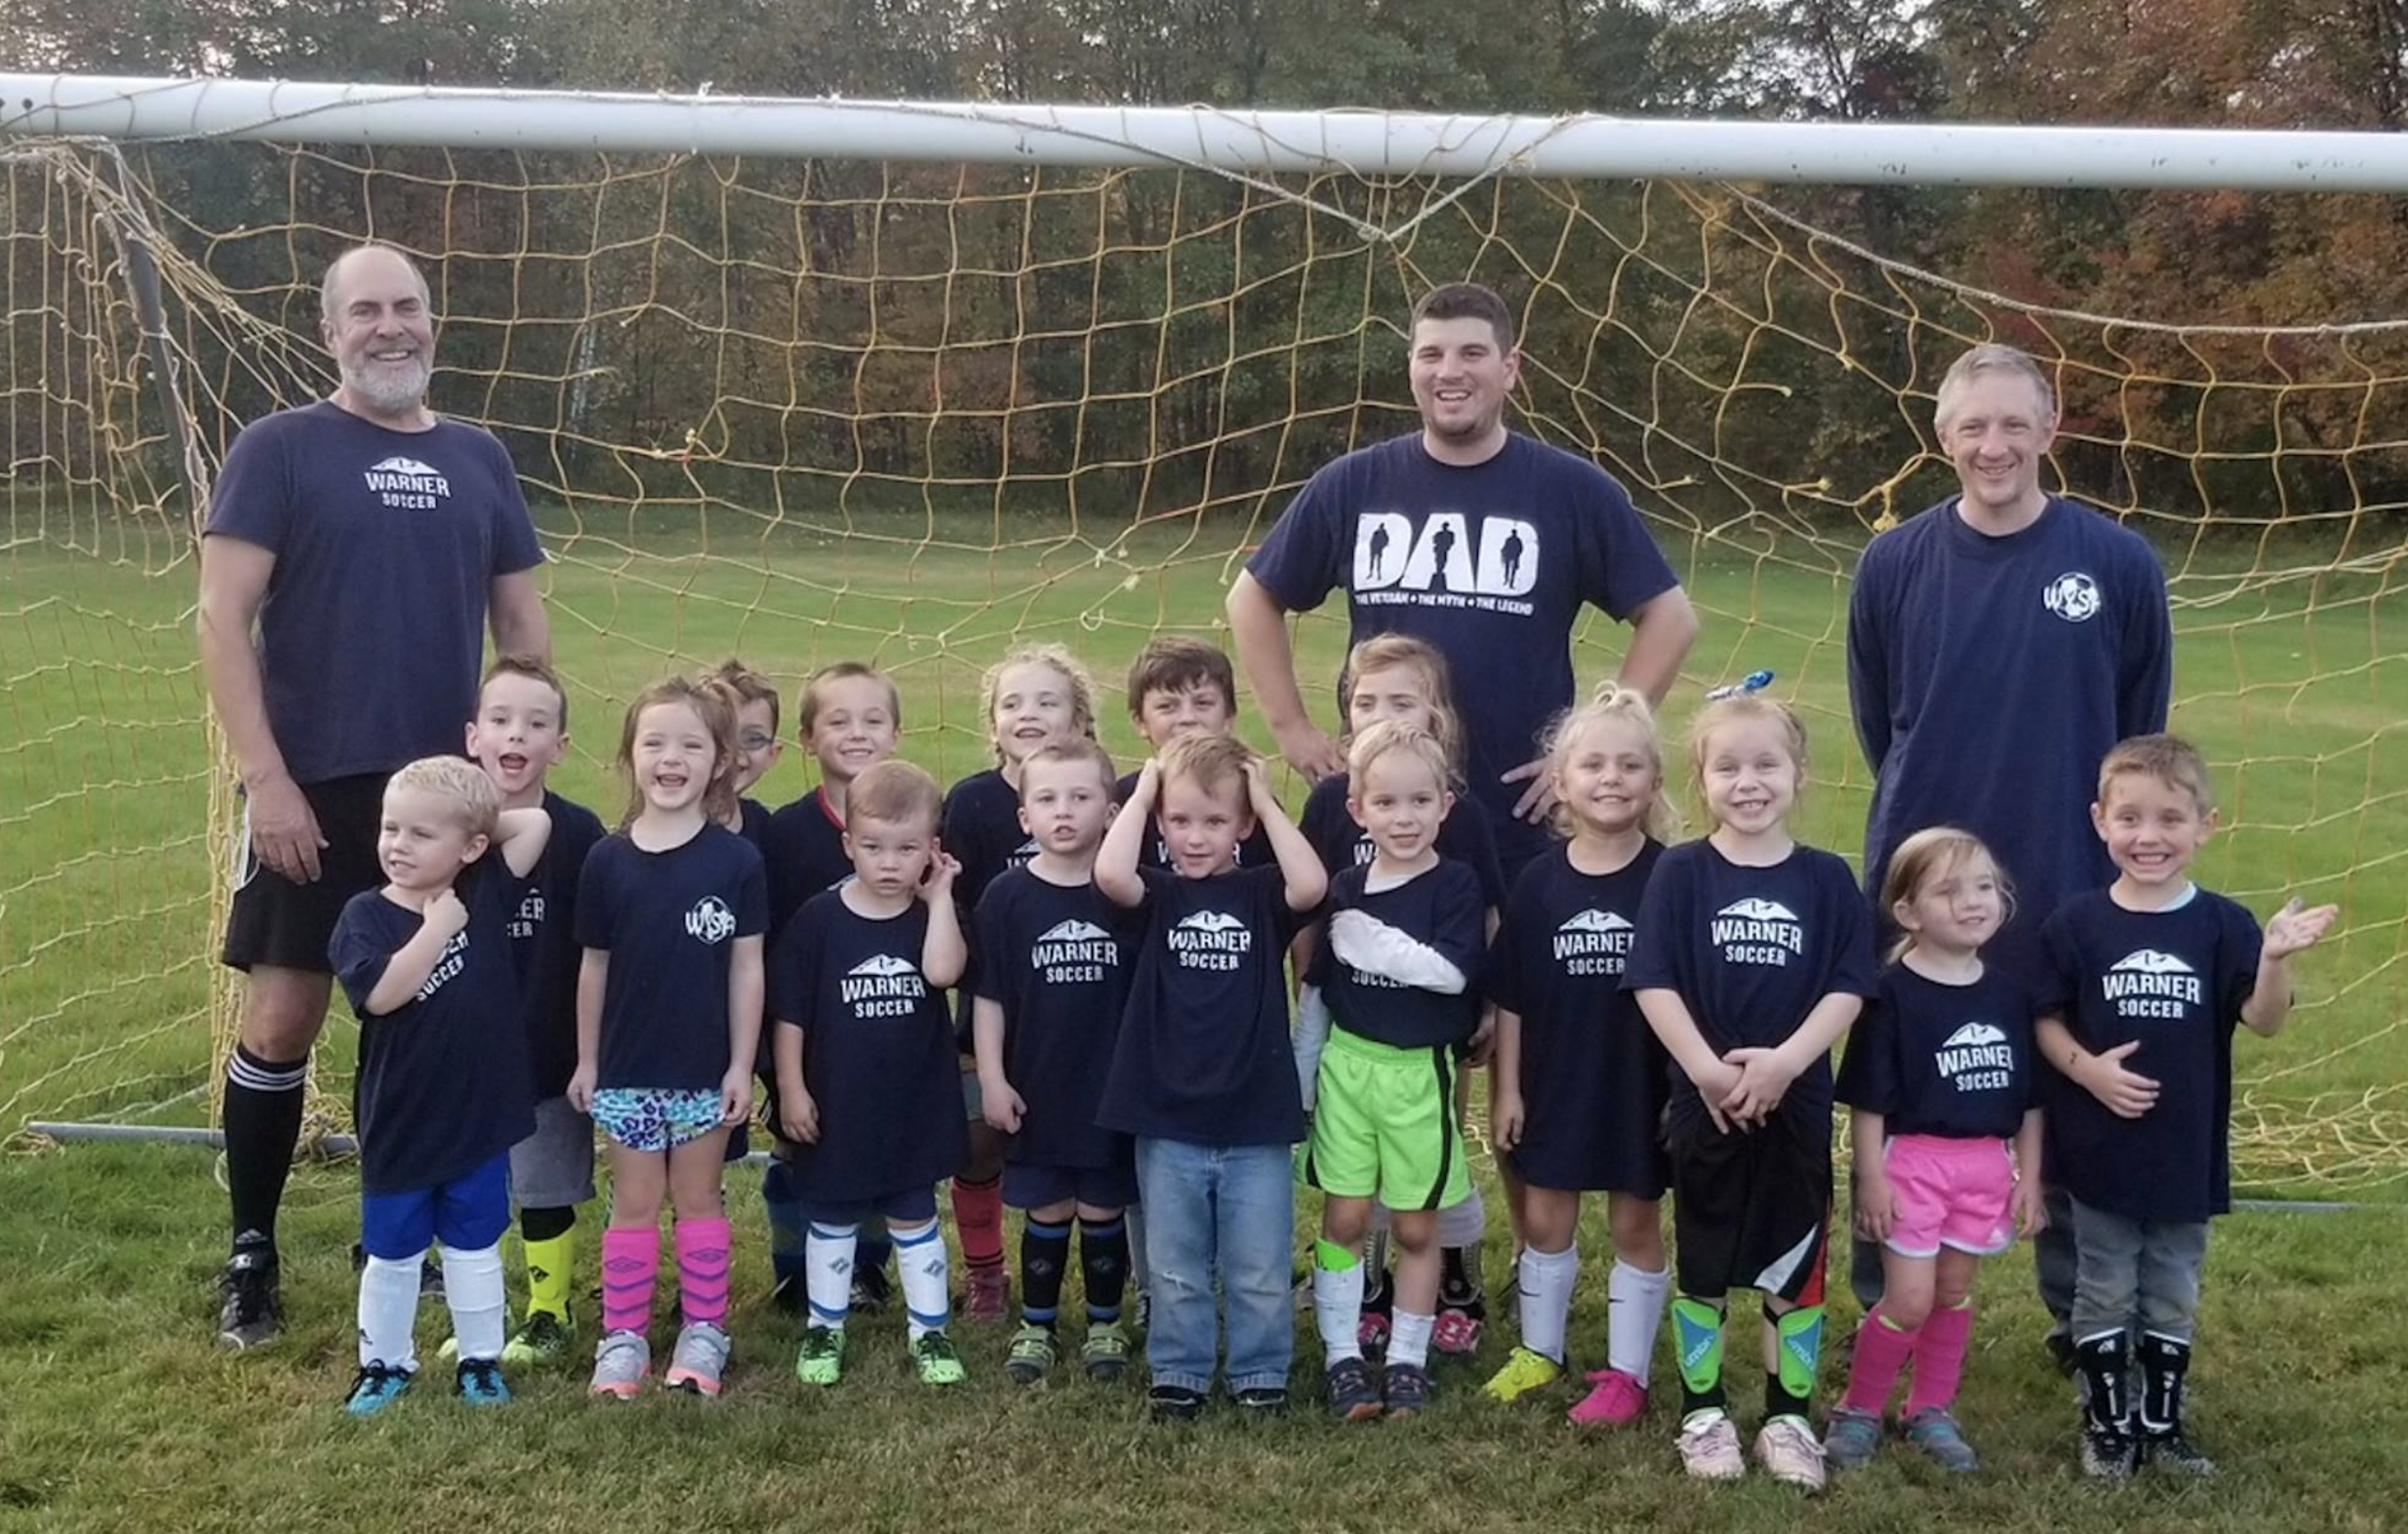 PAI is happy to support Warner Youth Soccer! We have the pleasure of sponsoring the Pre-K and Kinder teams! Looking great everyone!